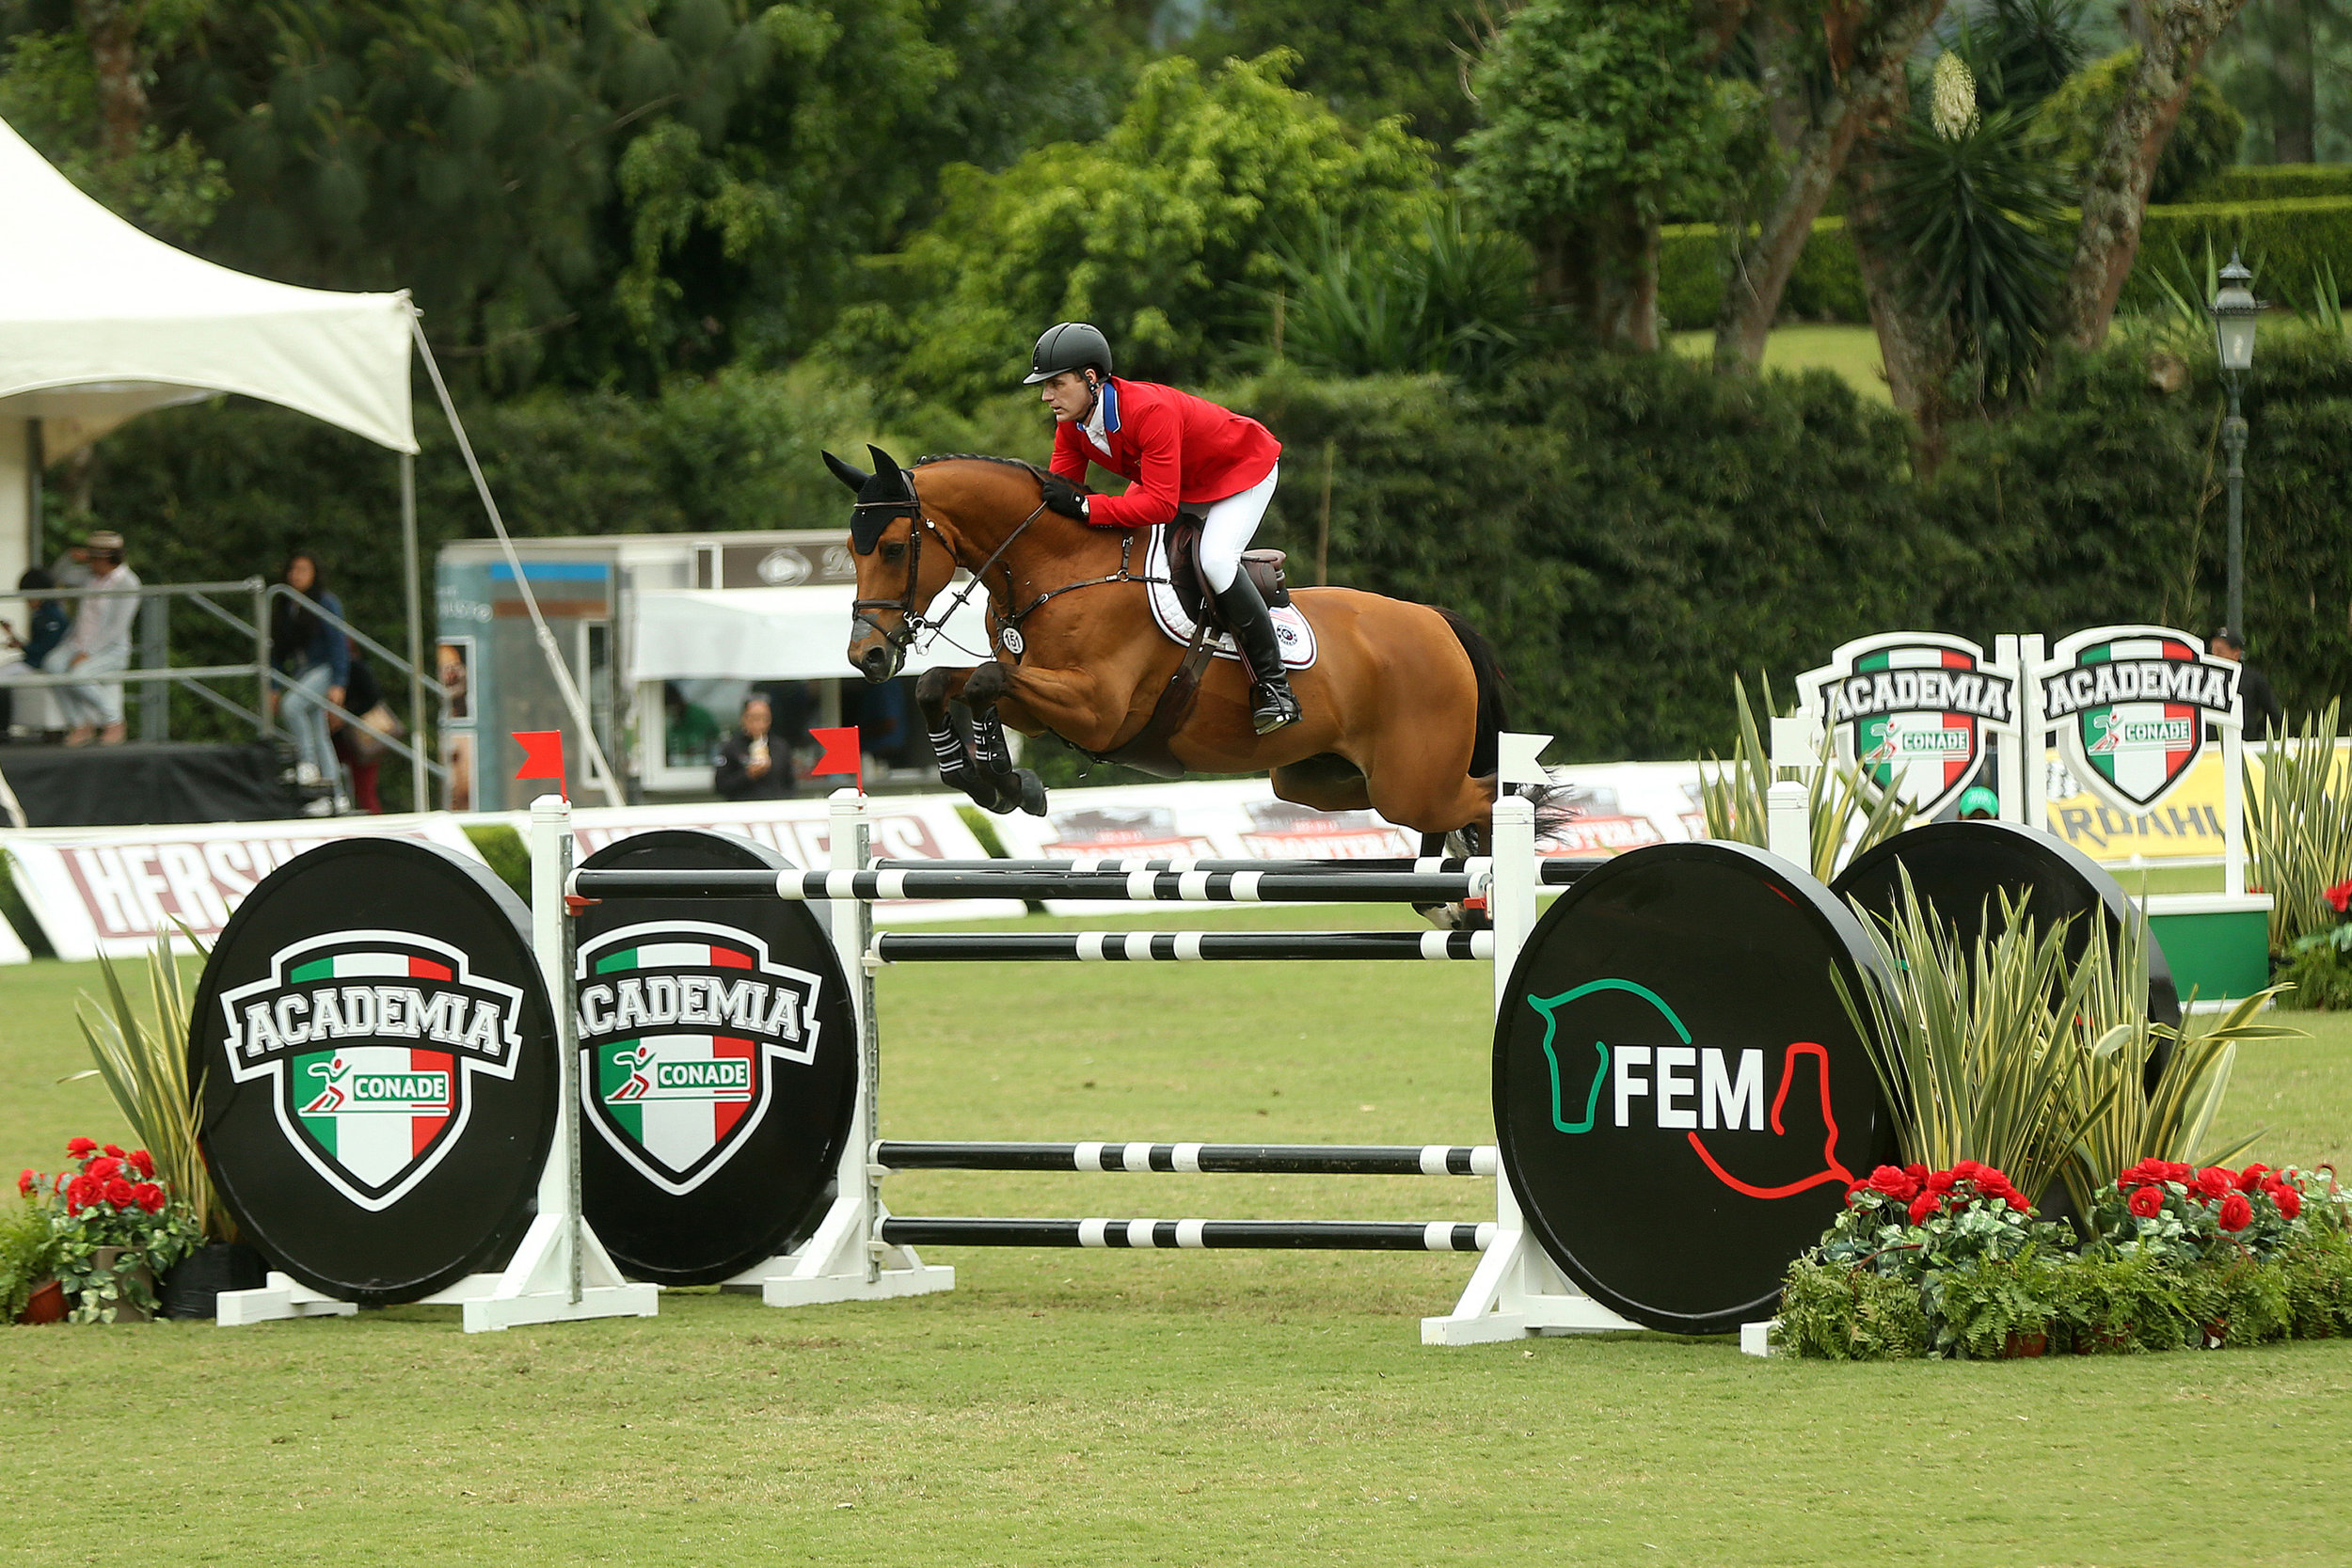 Peter Lutz and Robin de Ponthual competing in the FEI Nations Cup™ CSIO4* Coapexpan. (Photo: Anwar Esquivel)